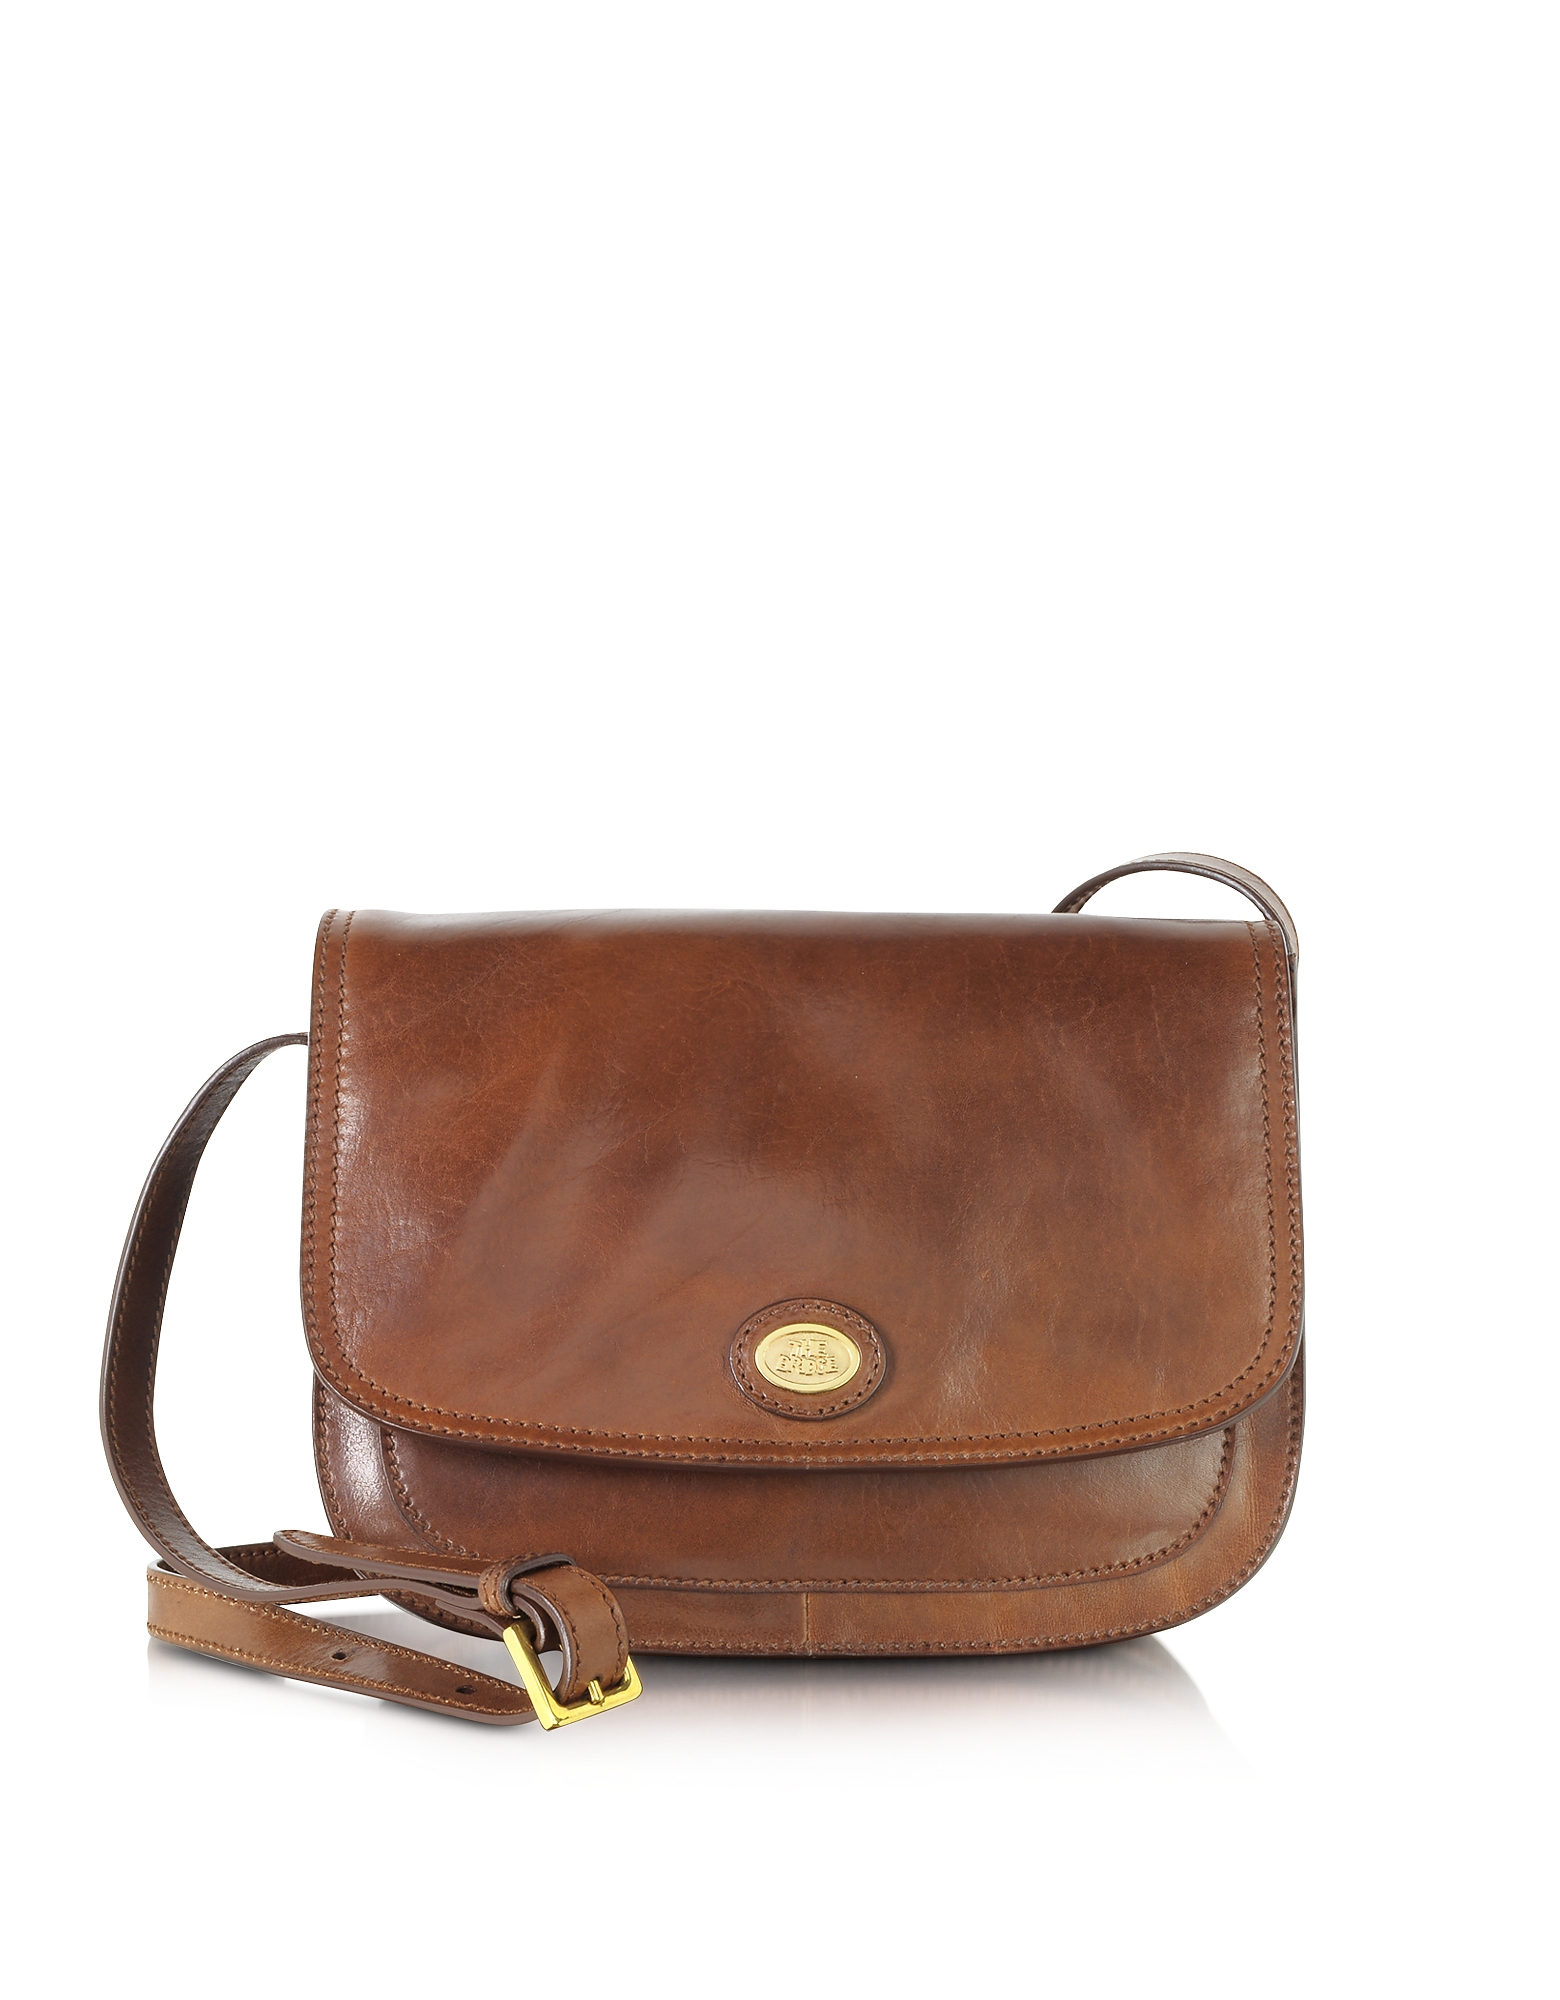 The Bridge Handbags, Story Donna Marrone Leather Crossbody Bag